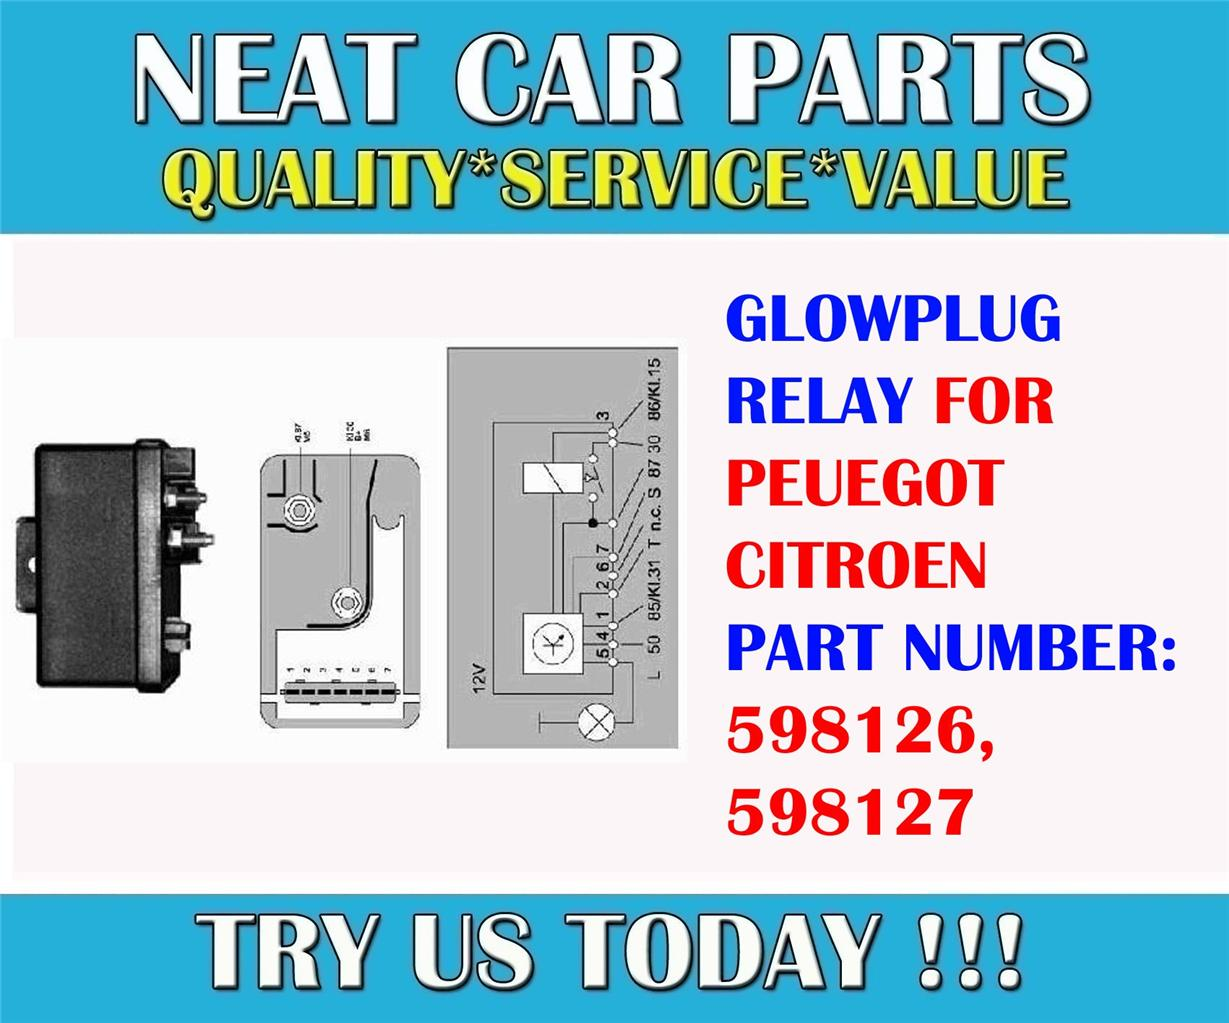 glow plug relay for peugeot 106 205 306 405 expert boxer partner 1 8d 1 9d 2 5td. Black Bedroom Furniture Sets. Home Design Ideas